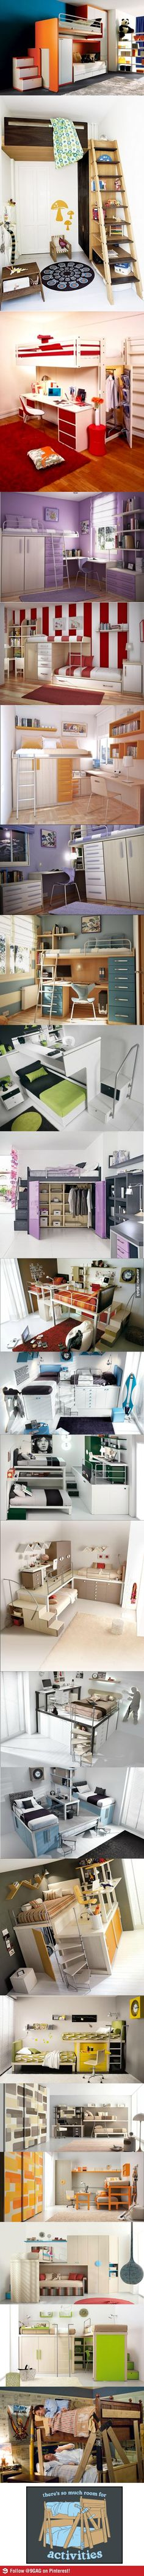 Just some LOFT and BUNKBEDS... I want a loft bed!!!!!!!!!!!!!!!!!!!!!!!